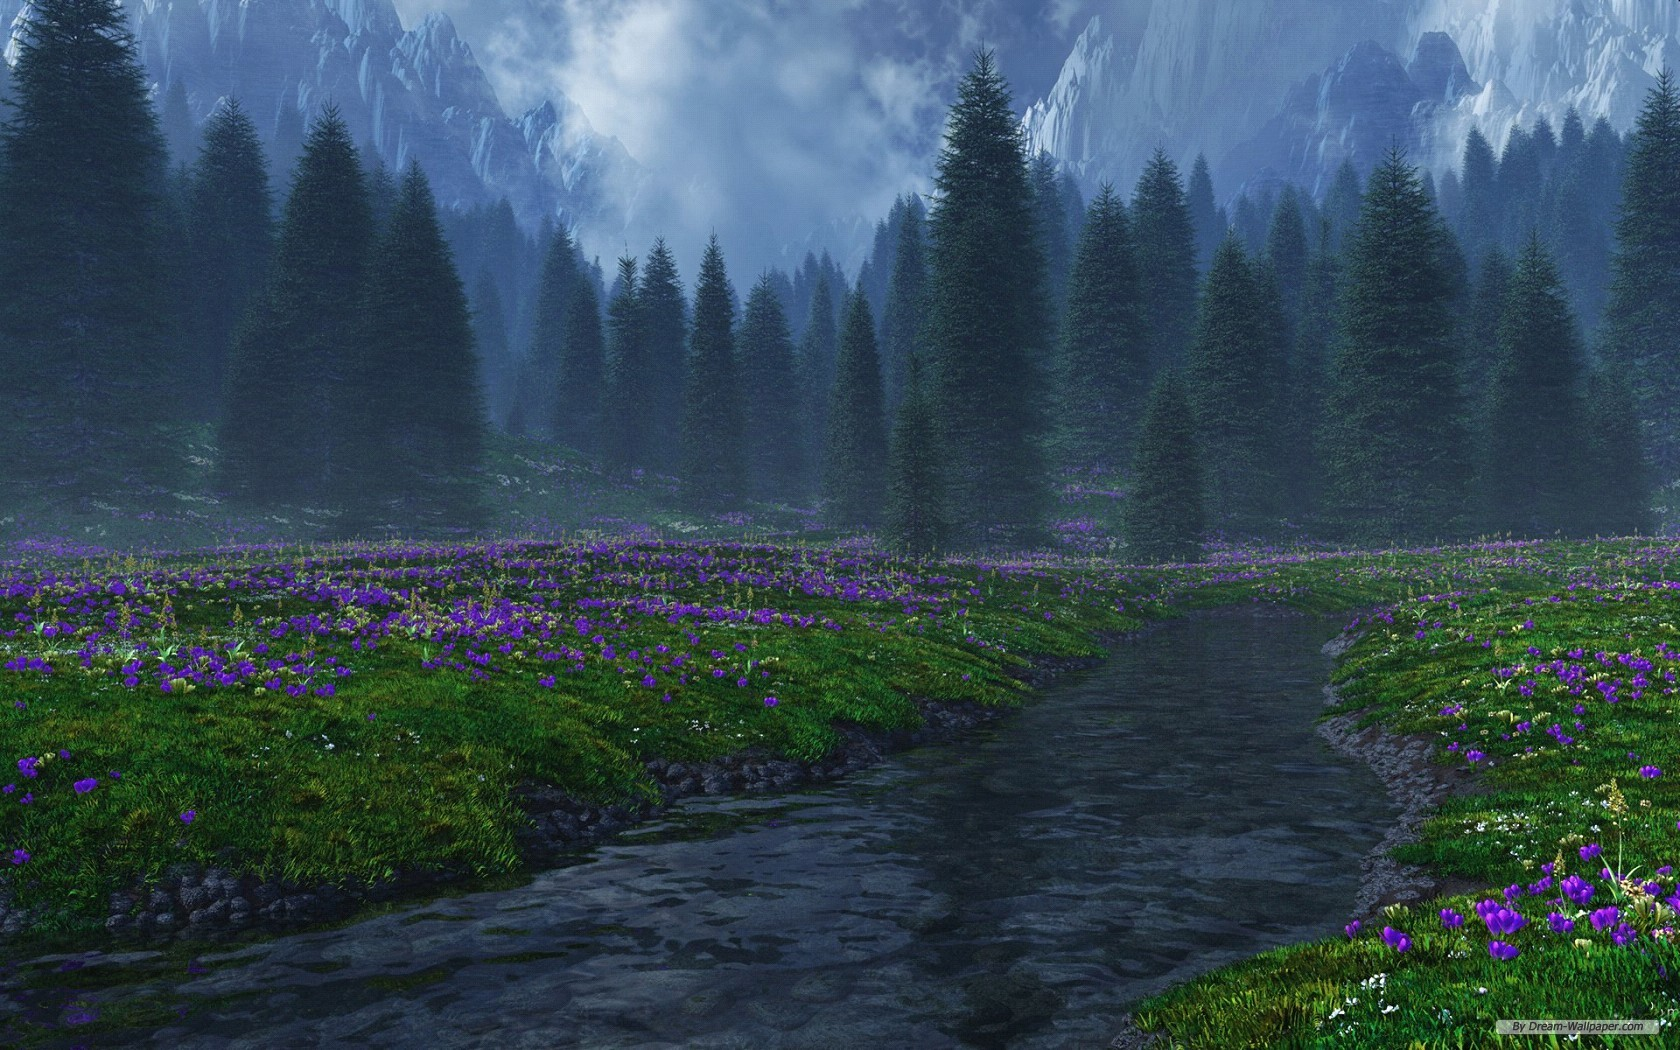 Wallpaper Nature wallpaper 3D Landscape desktop 1 1680x1050